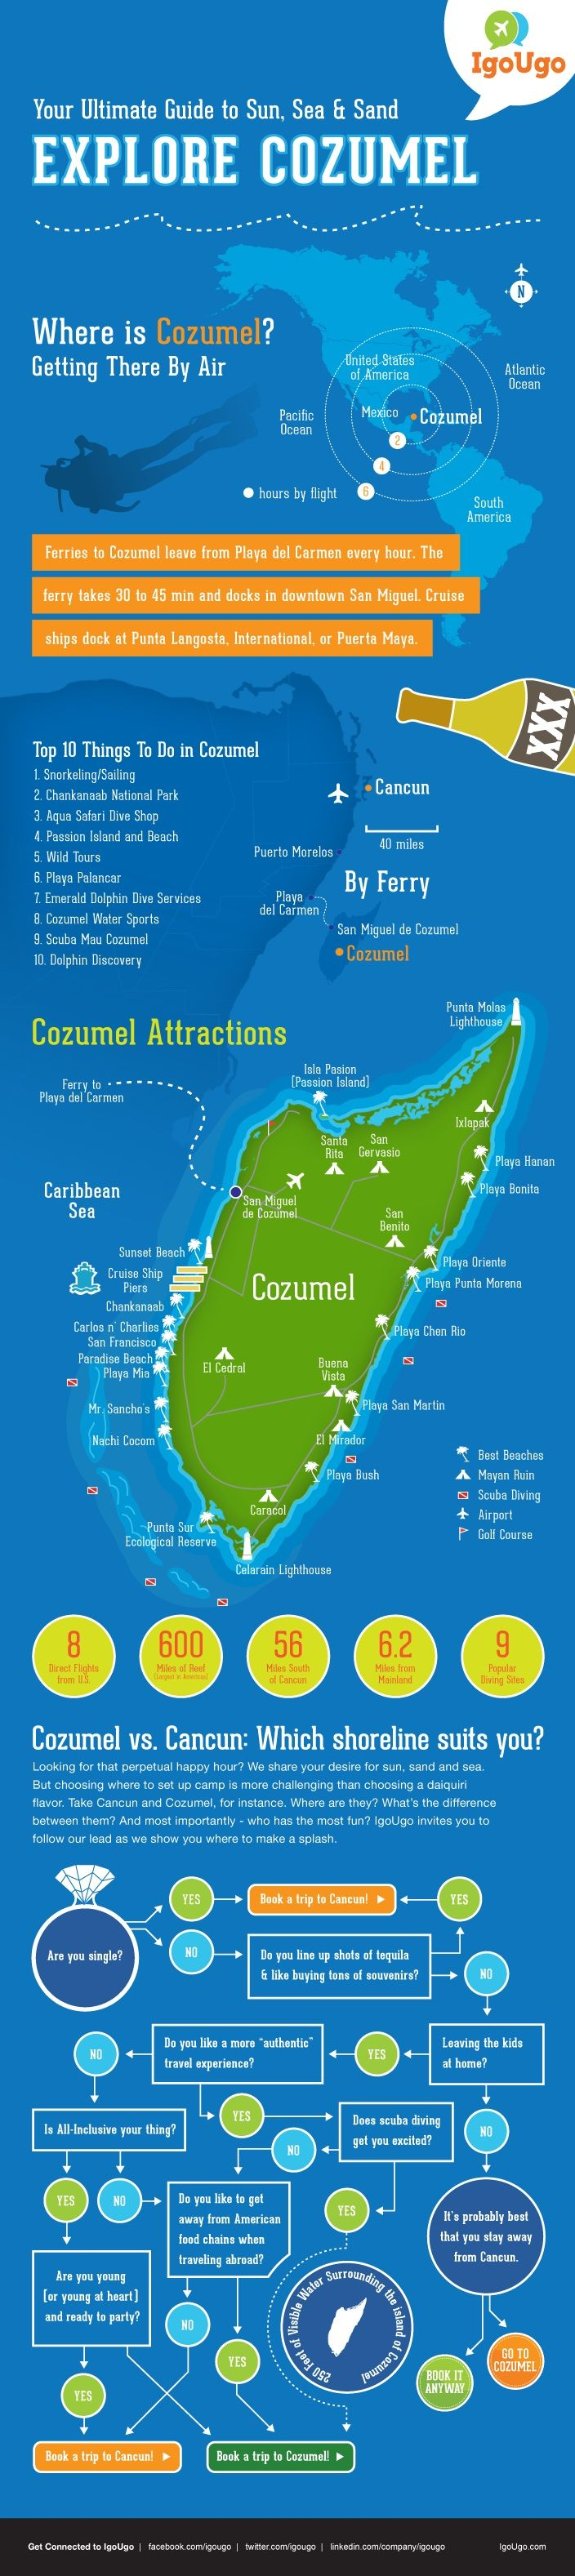 Cozumel Cancun Sweepstakes Infographic Vacation Trips Cozumel Mexico Cruise